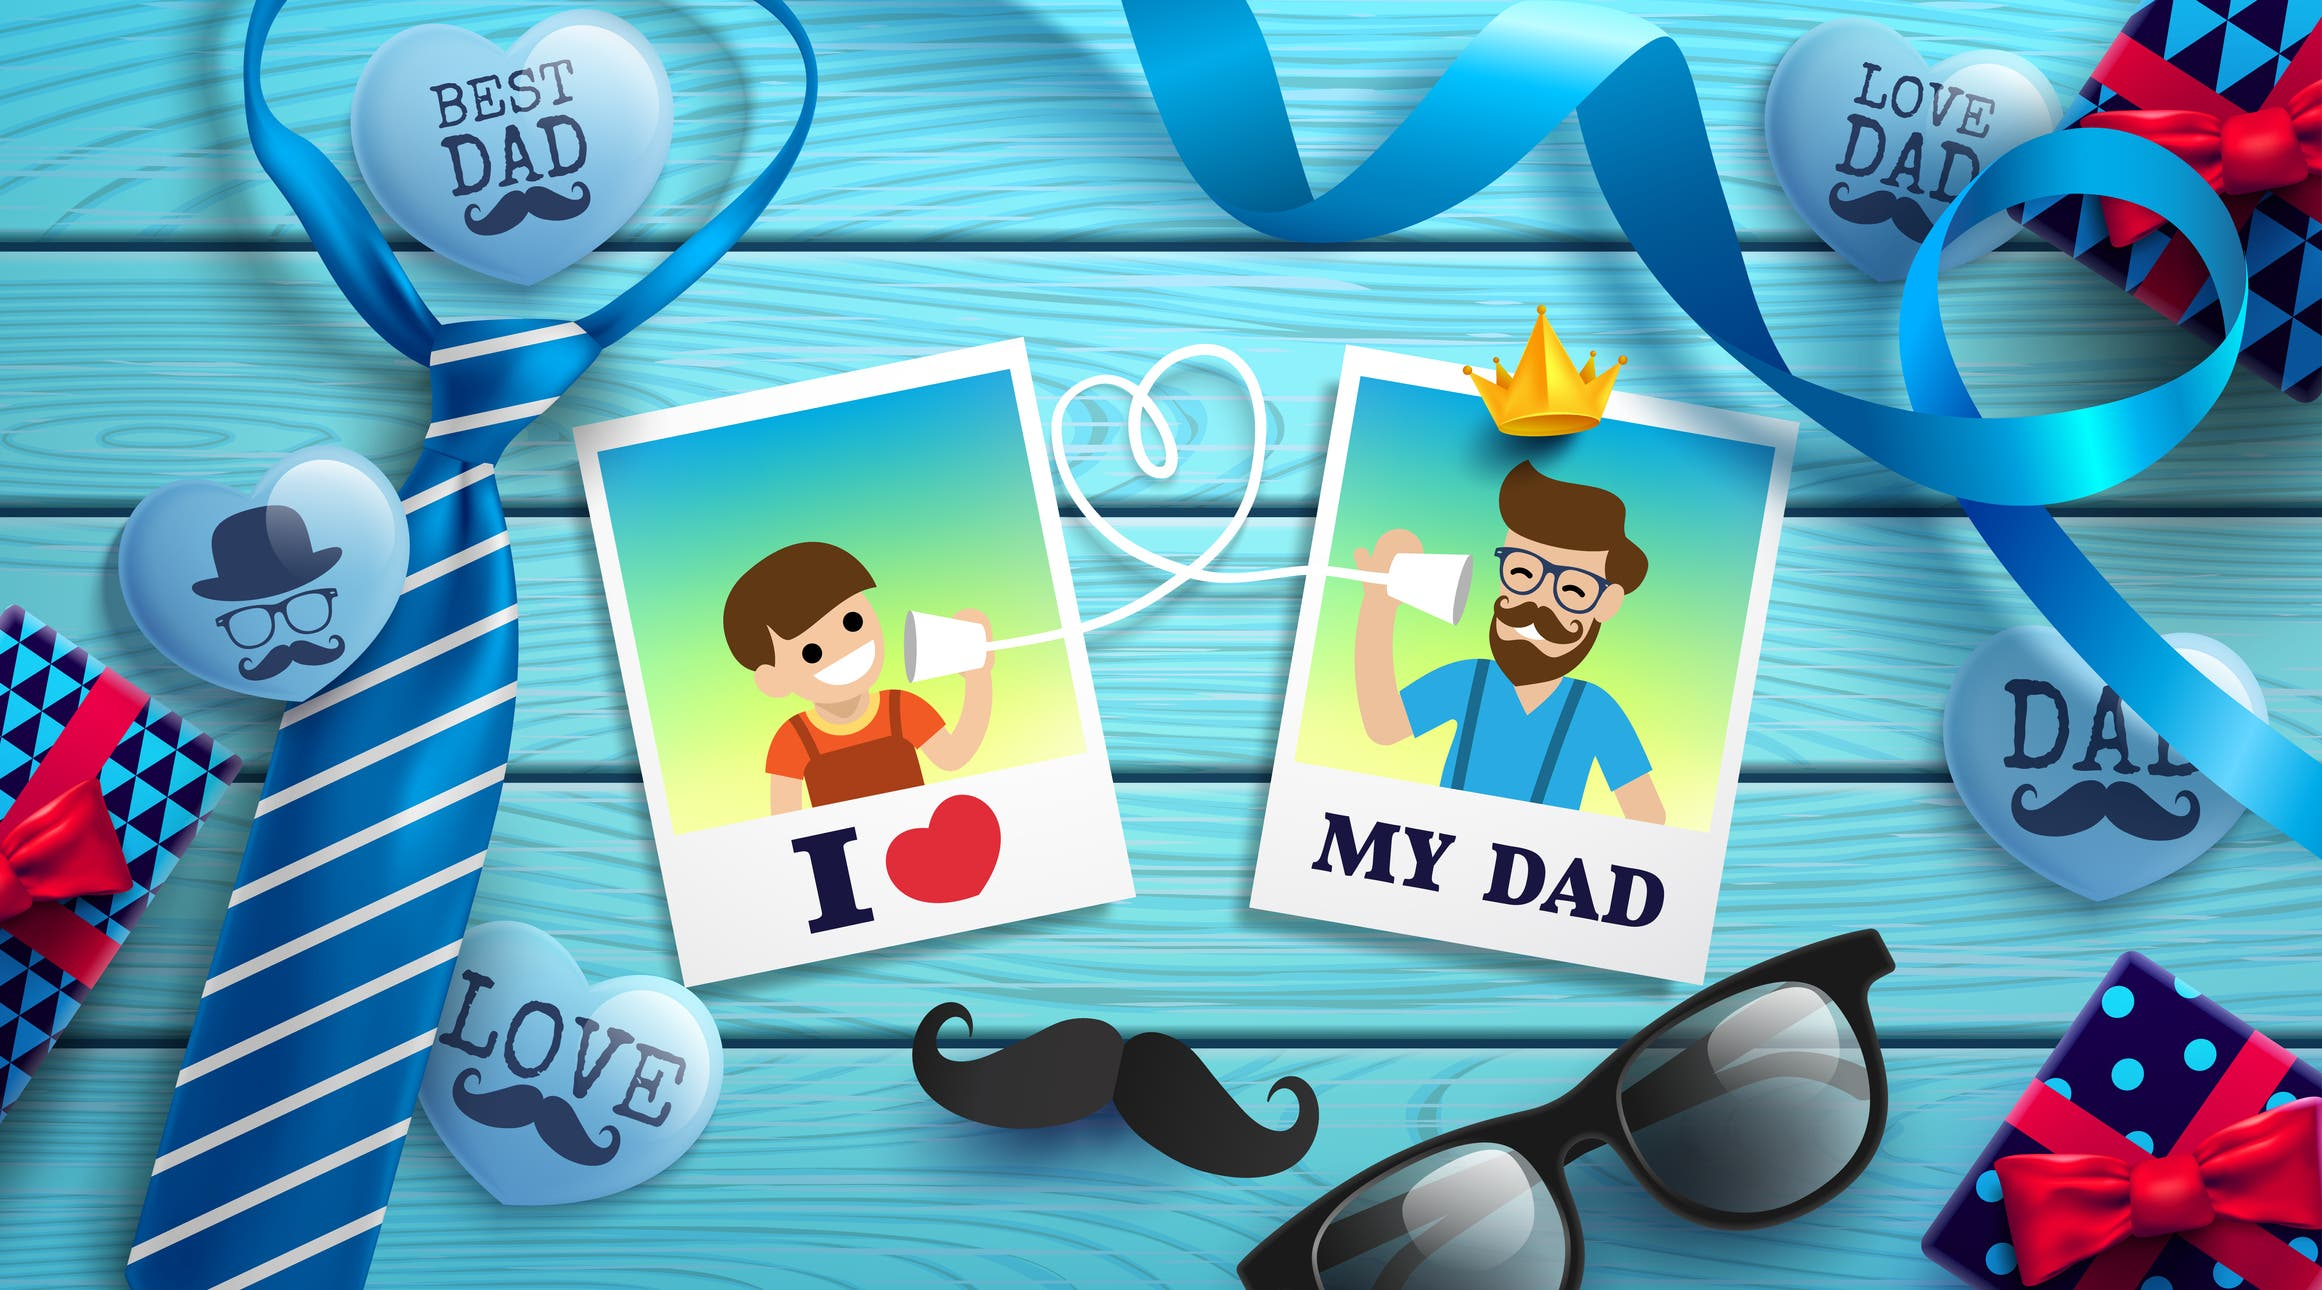 Happy Father S Day Flat Lay Style With Polaroid Frame Of Dad Photo And Boy Necktie Glasses And Gift Box On Wood Table Promotion And Shopping Template For Father S Day Vector Illustration Eps10